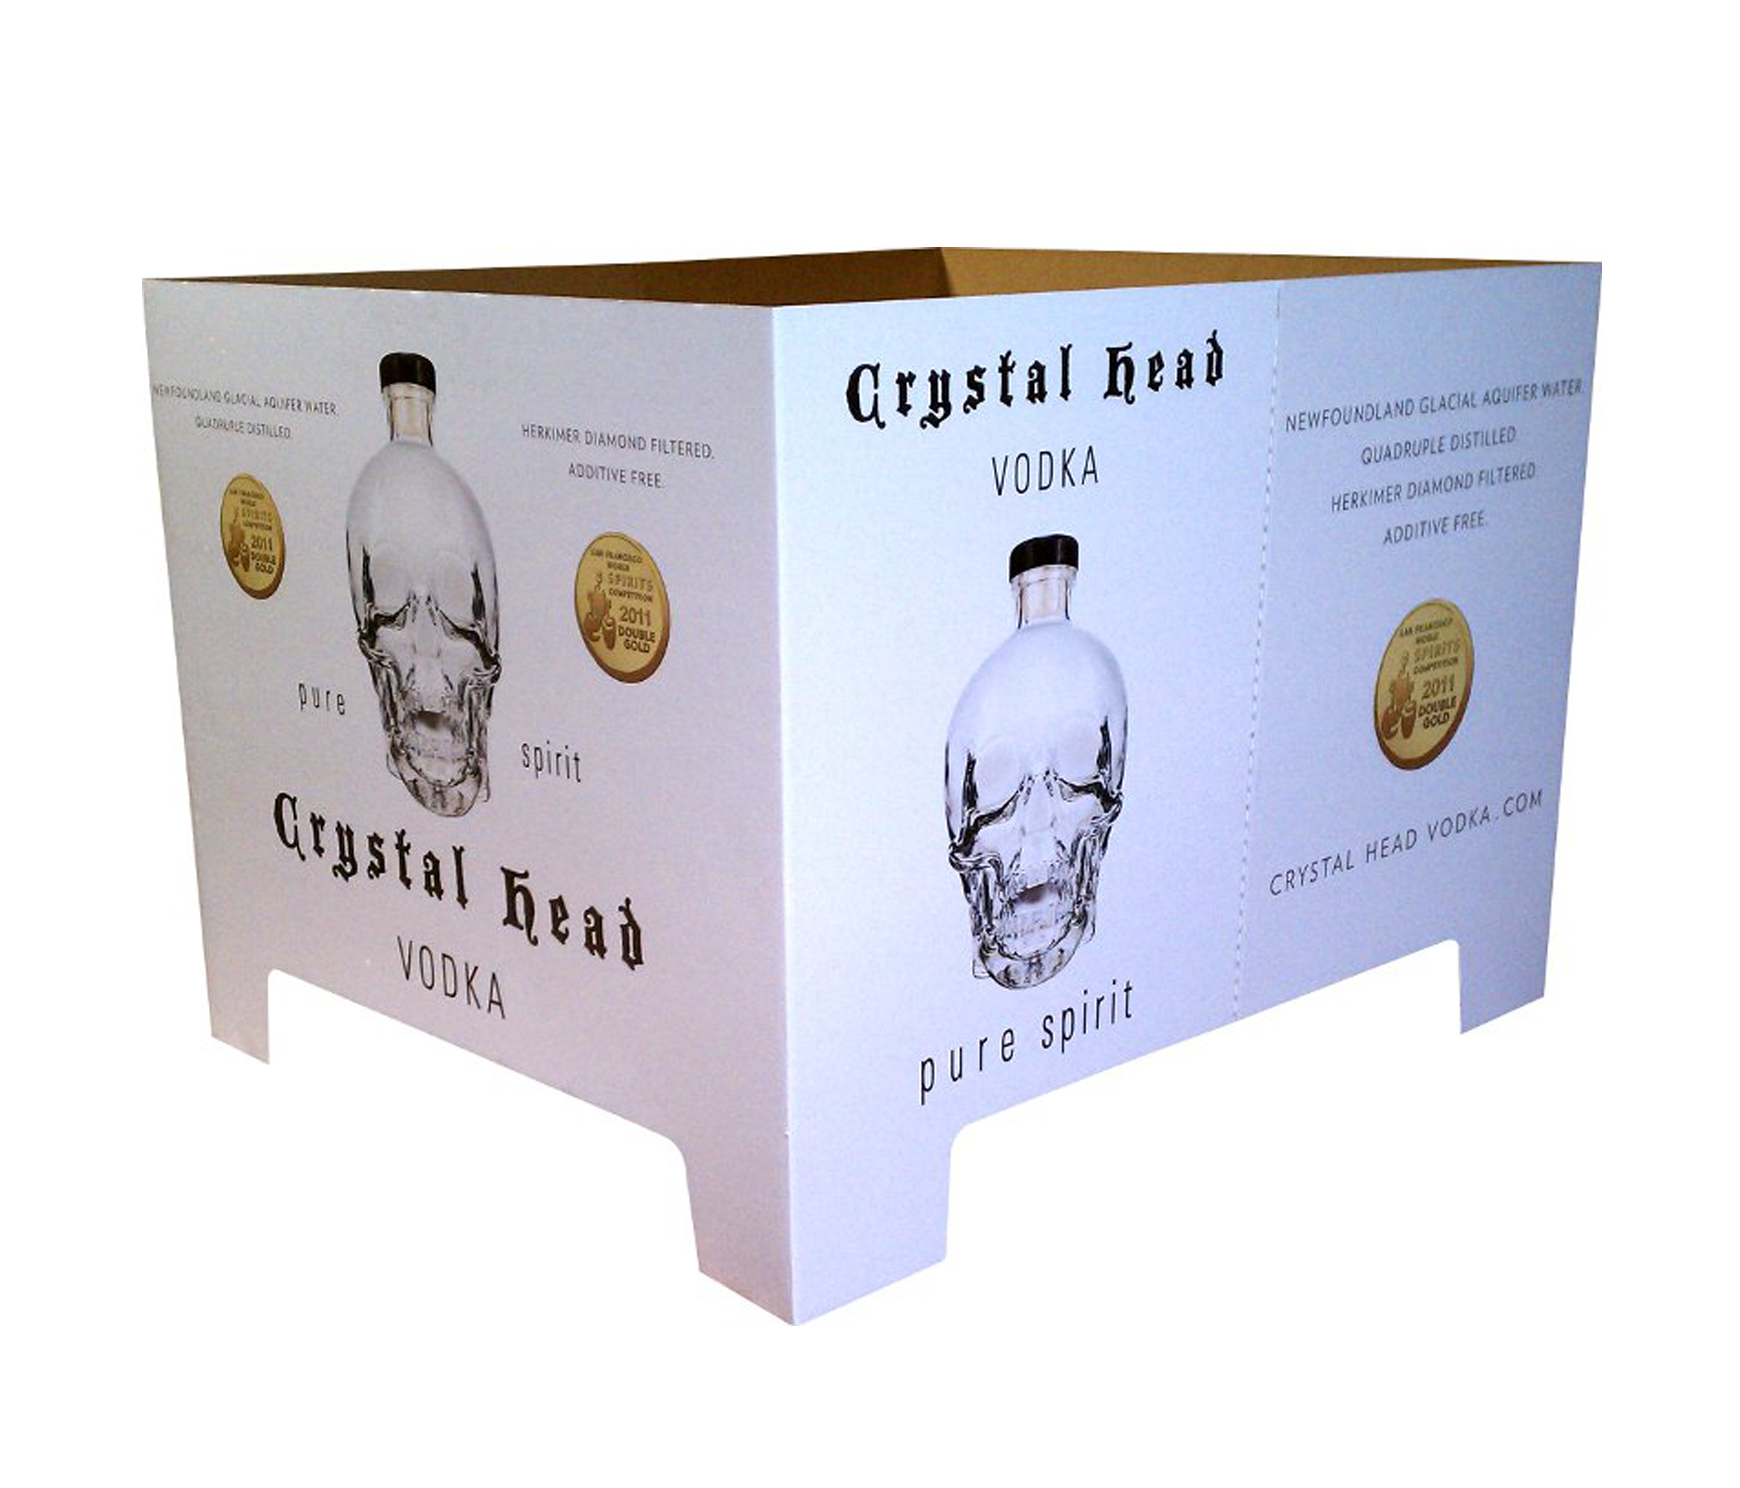 CrystalHead Vodka Box Display